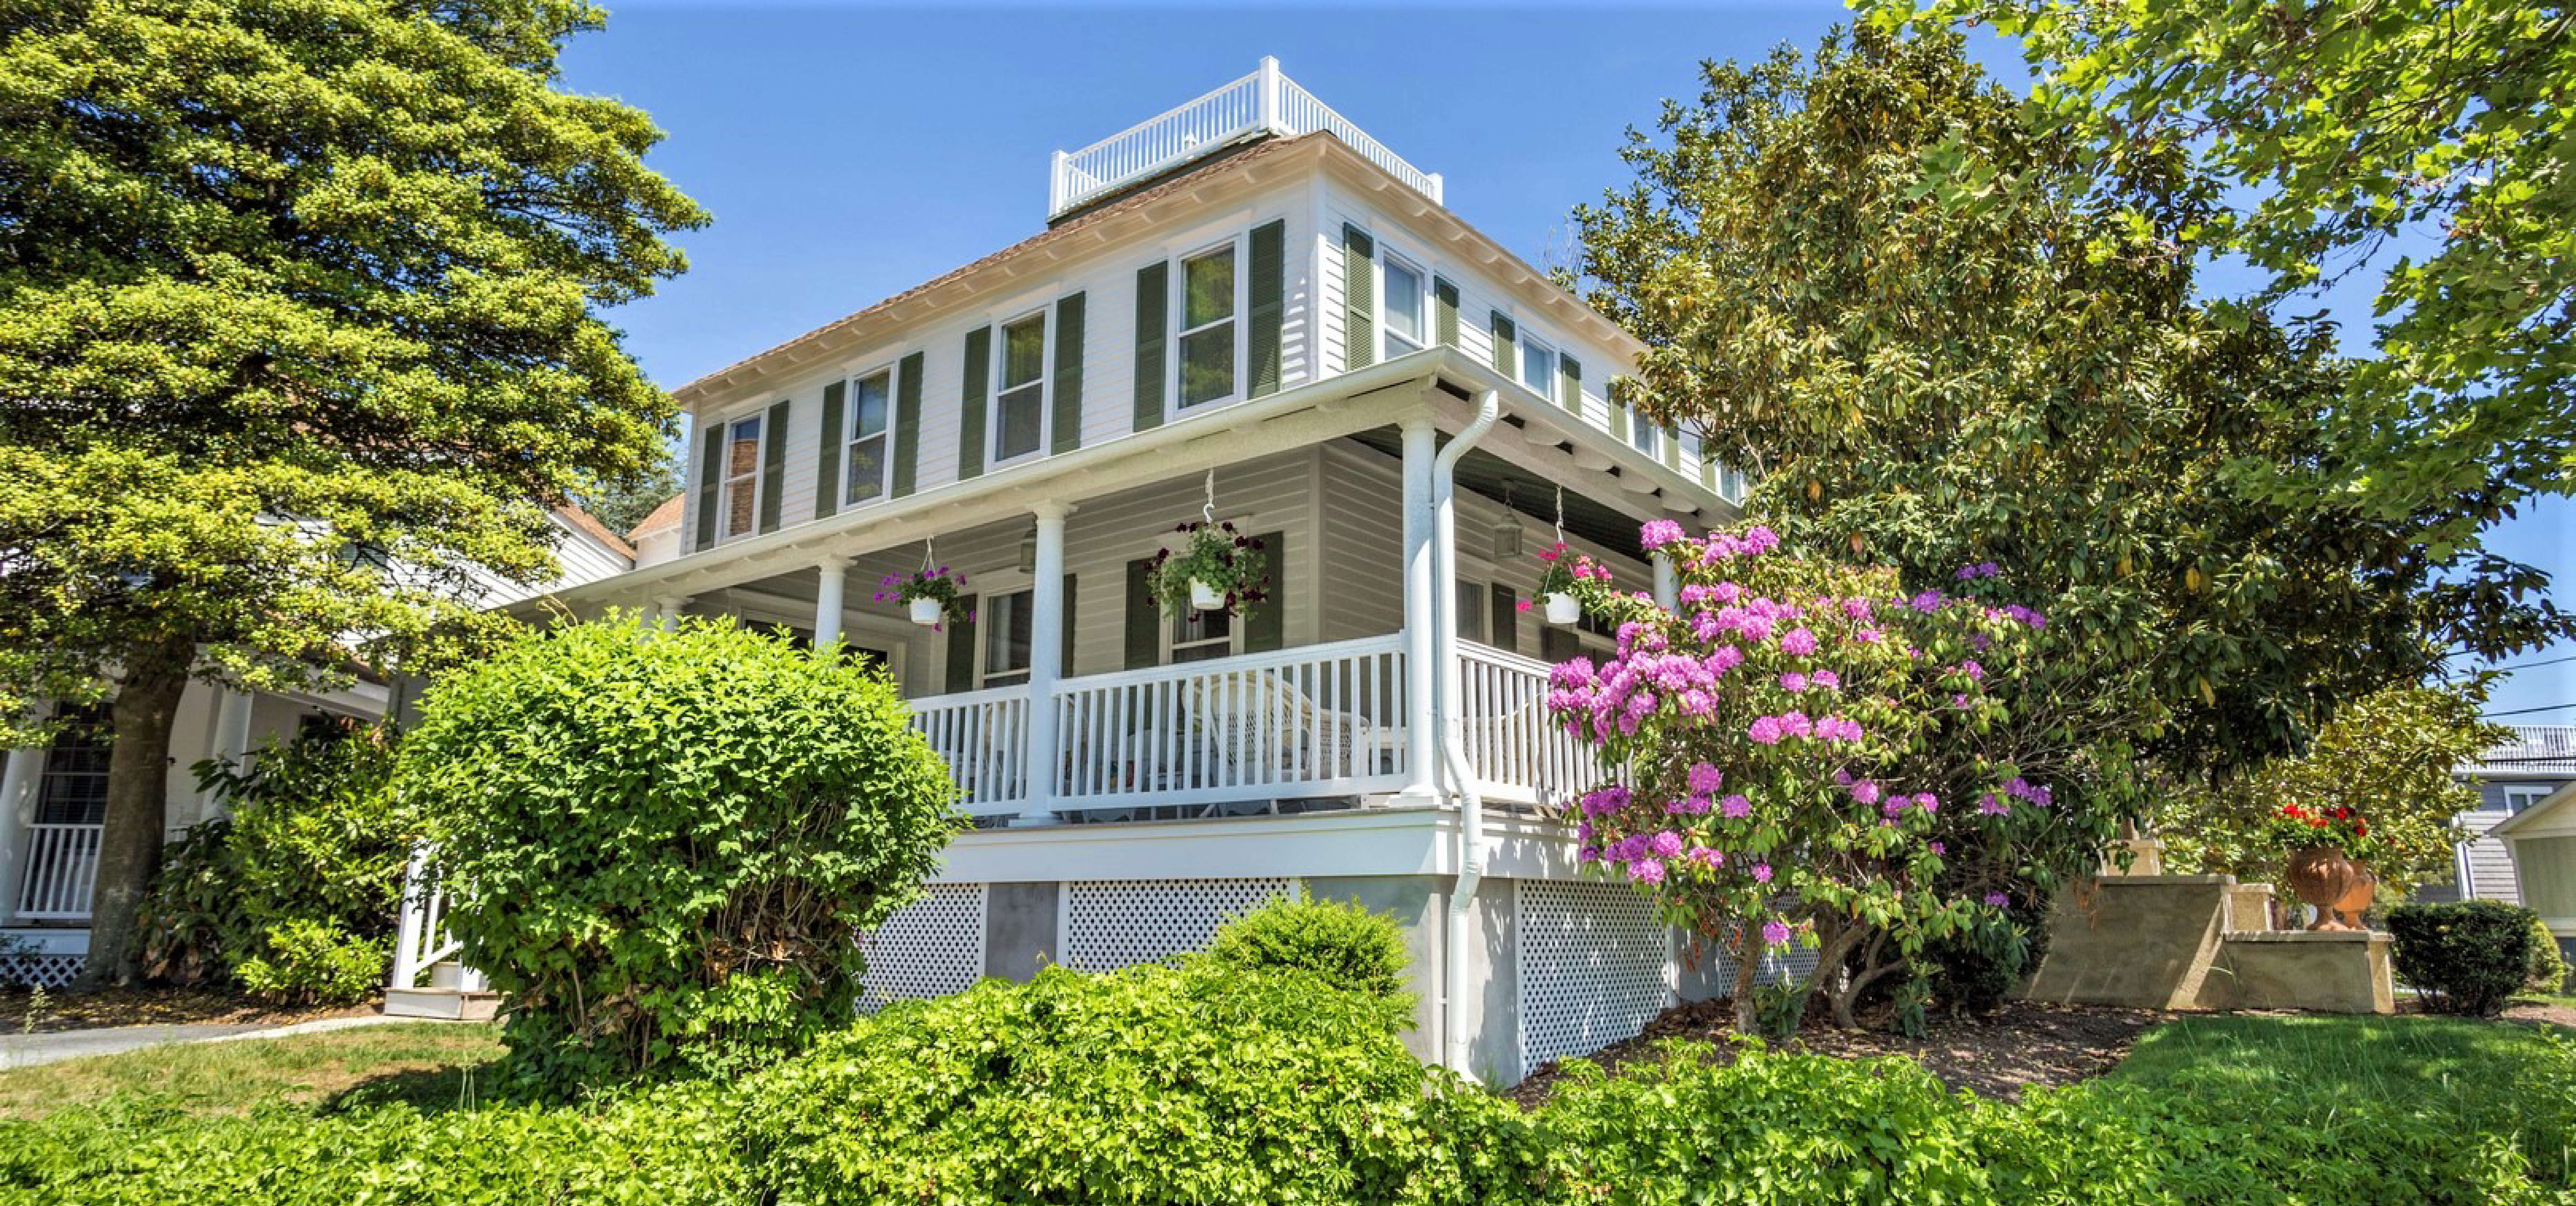 31 Olive Avenue, Rehoboth Beach : $2,165,000